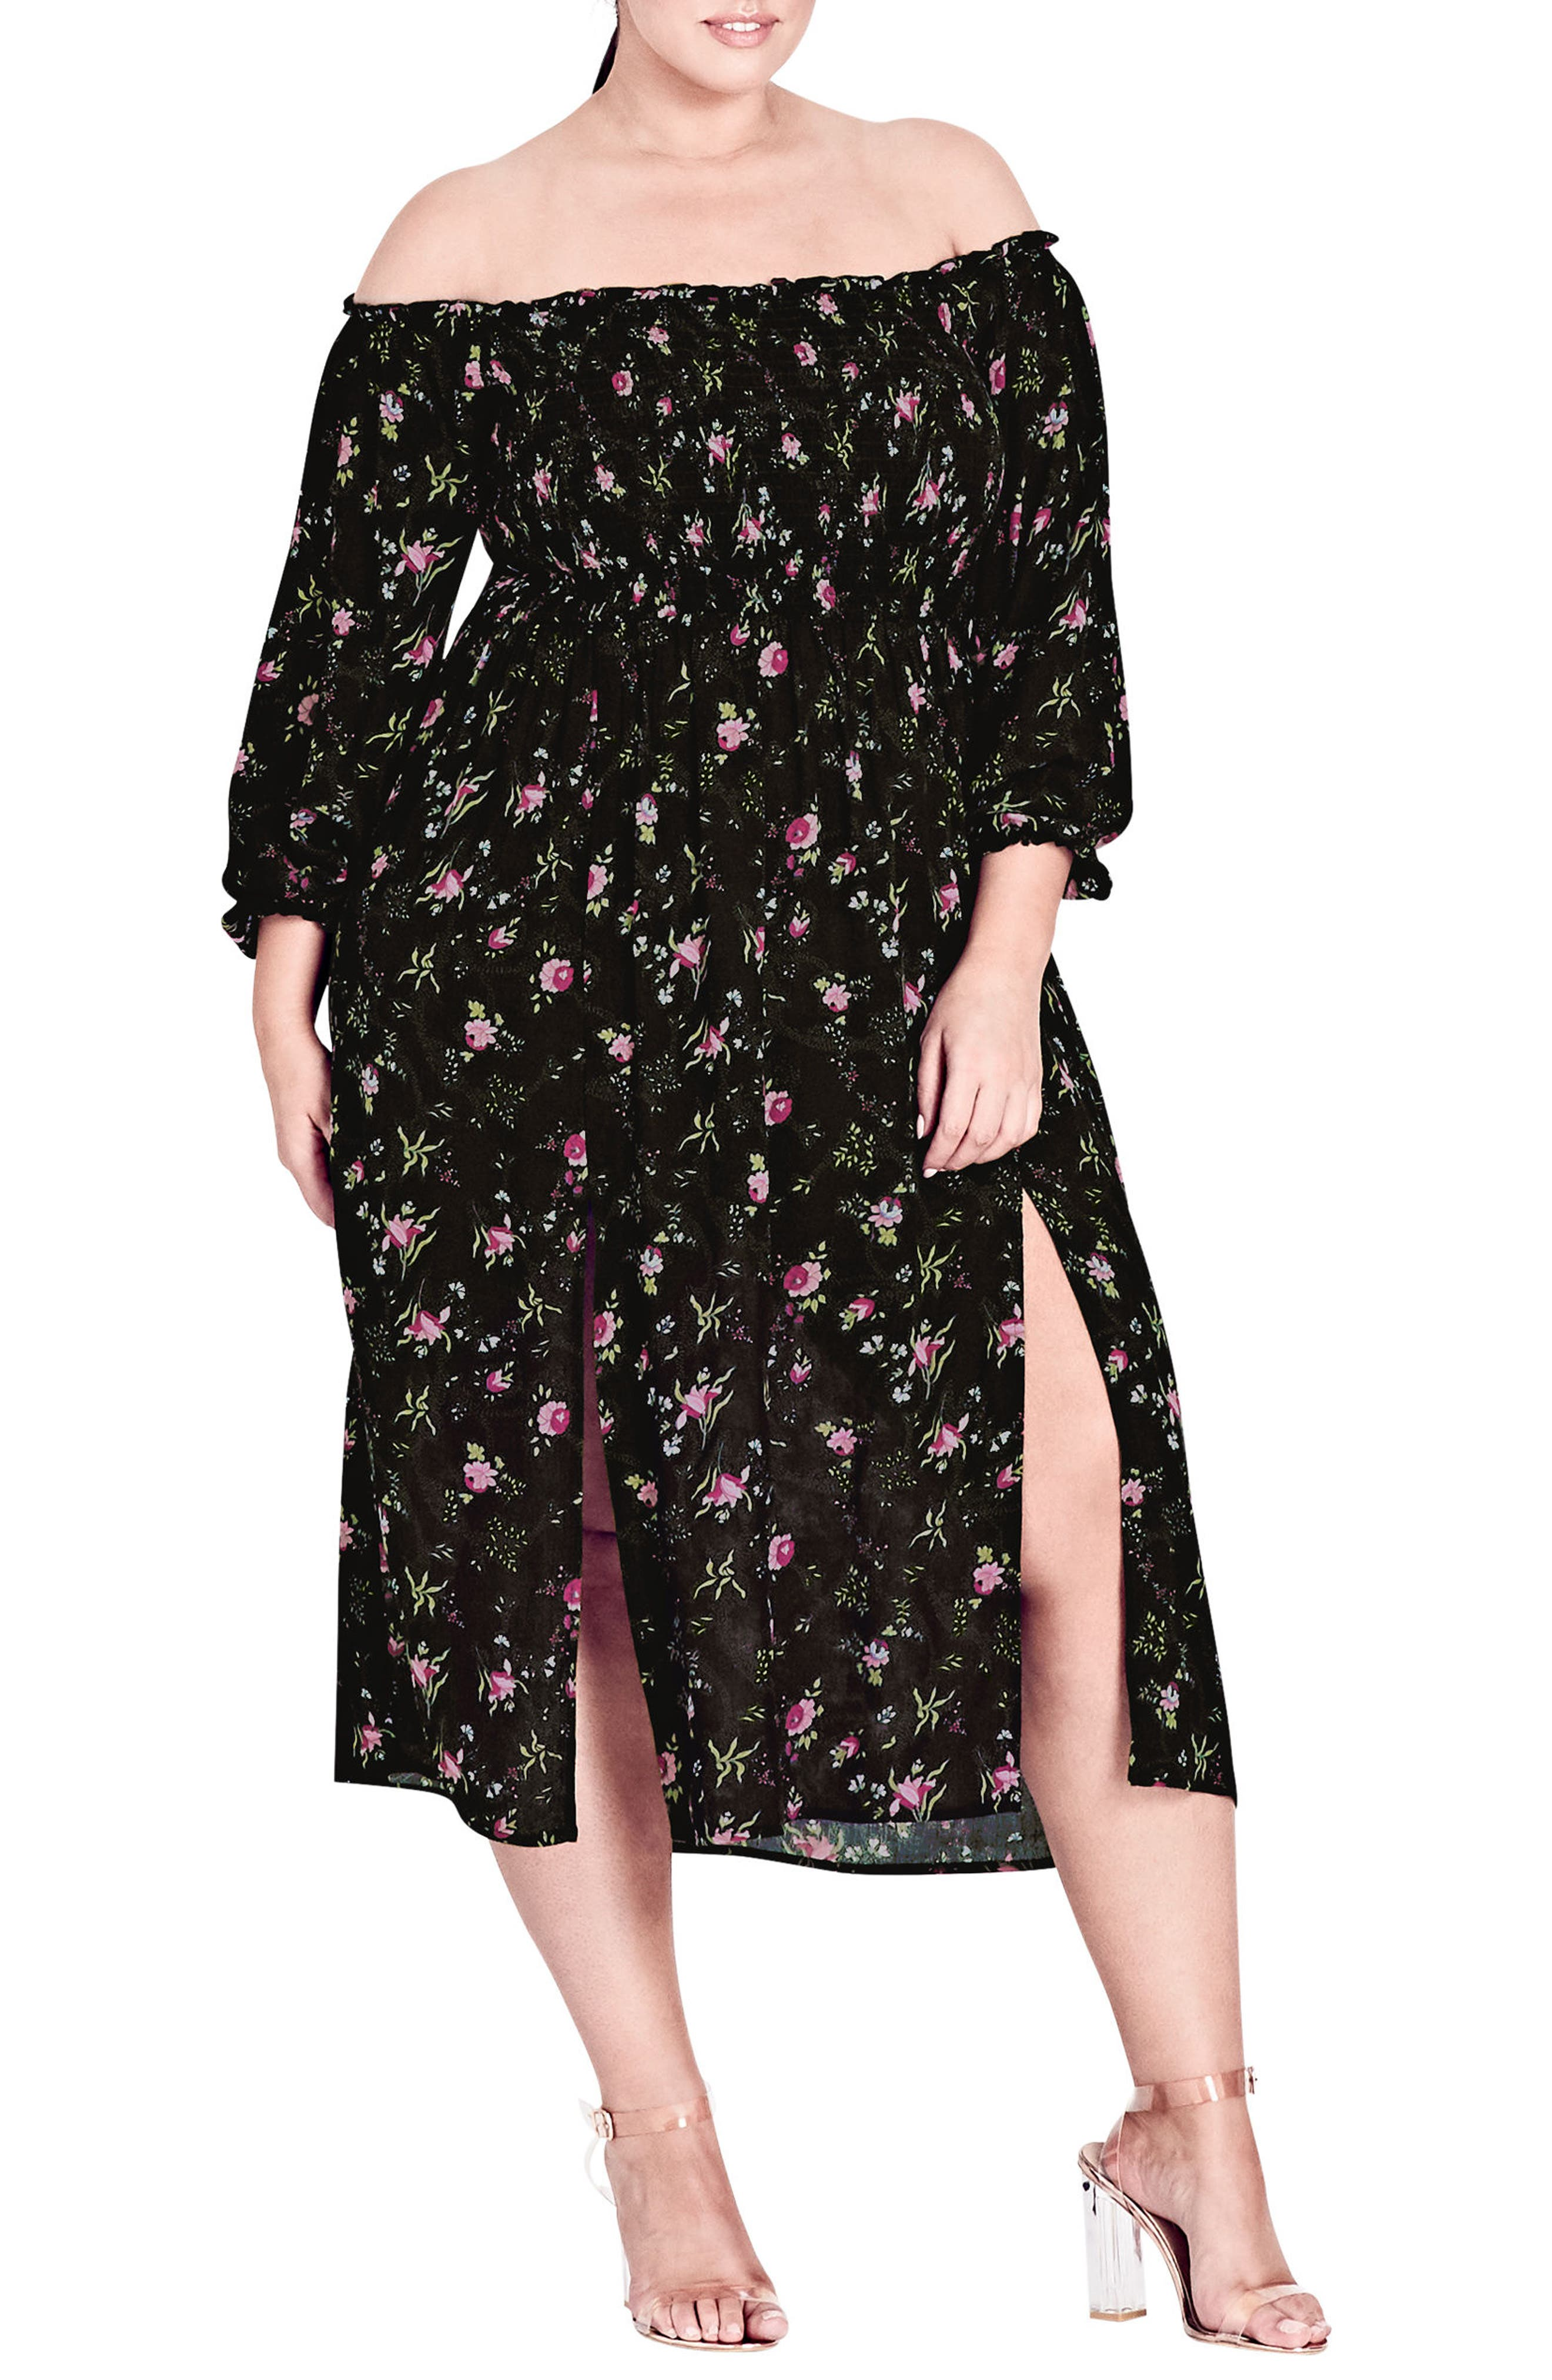 CITY CHIC,                             Garden Floral Off the Shoulder Dress,                             Main thumbnail 1, color,                             001